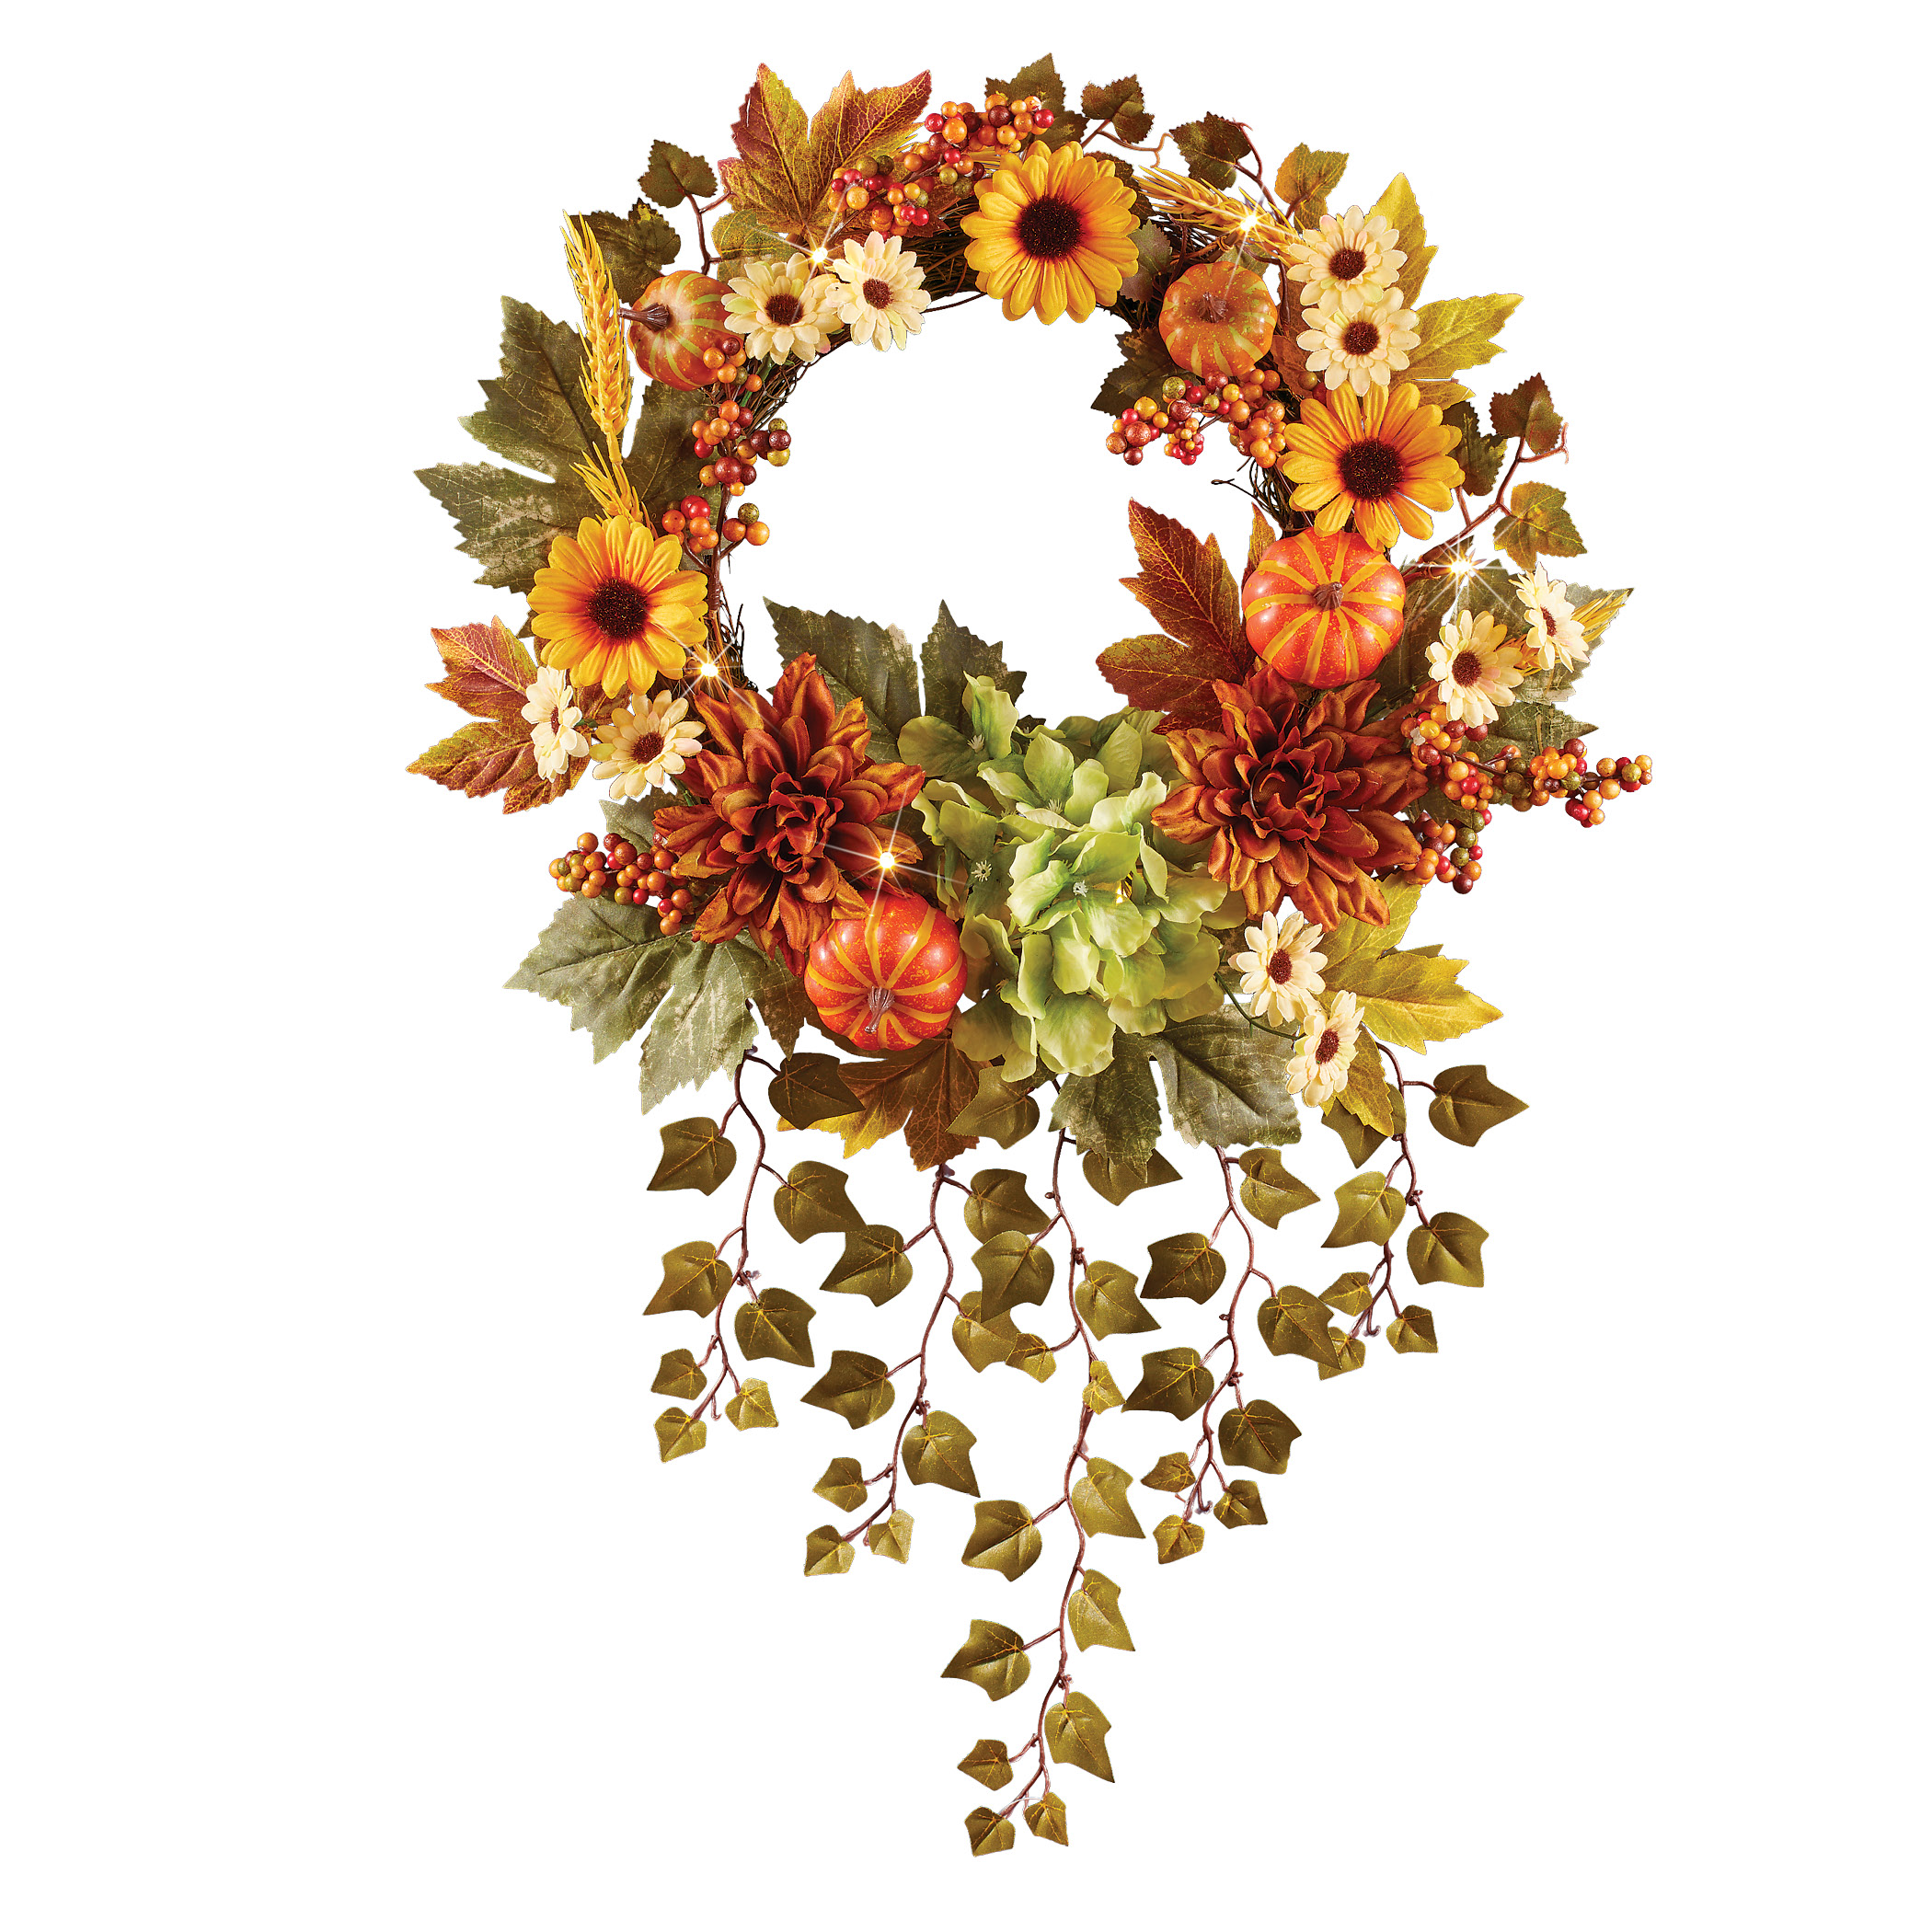 Led Lighted Autumn Sunflower Wreath With Hanging Ivy Has A Colorful Assortment Of Fall Flowers And Hook On Back For Easy Hanging Walmart Com Walmart Com